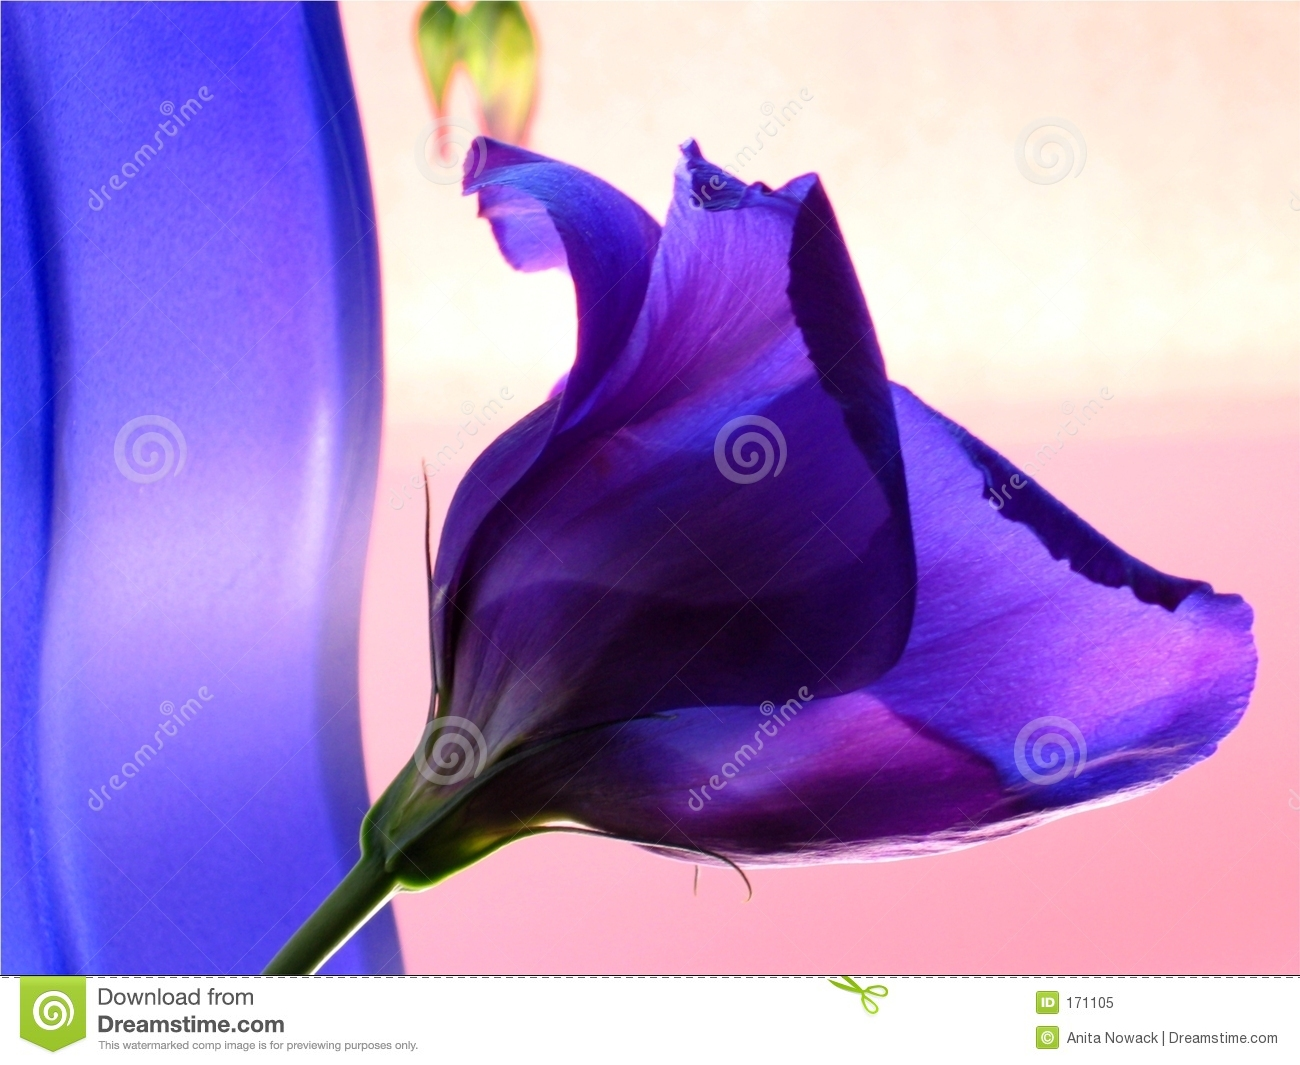 Blue vase and blue flower in pink background